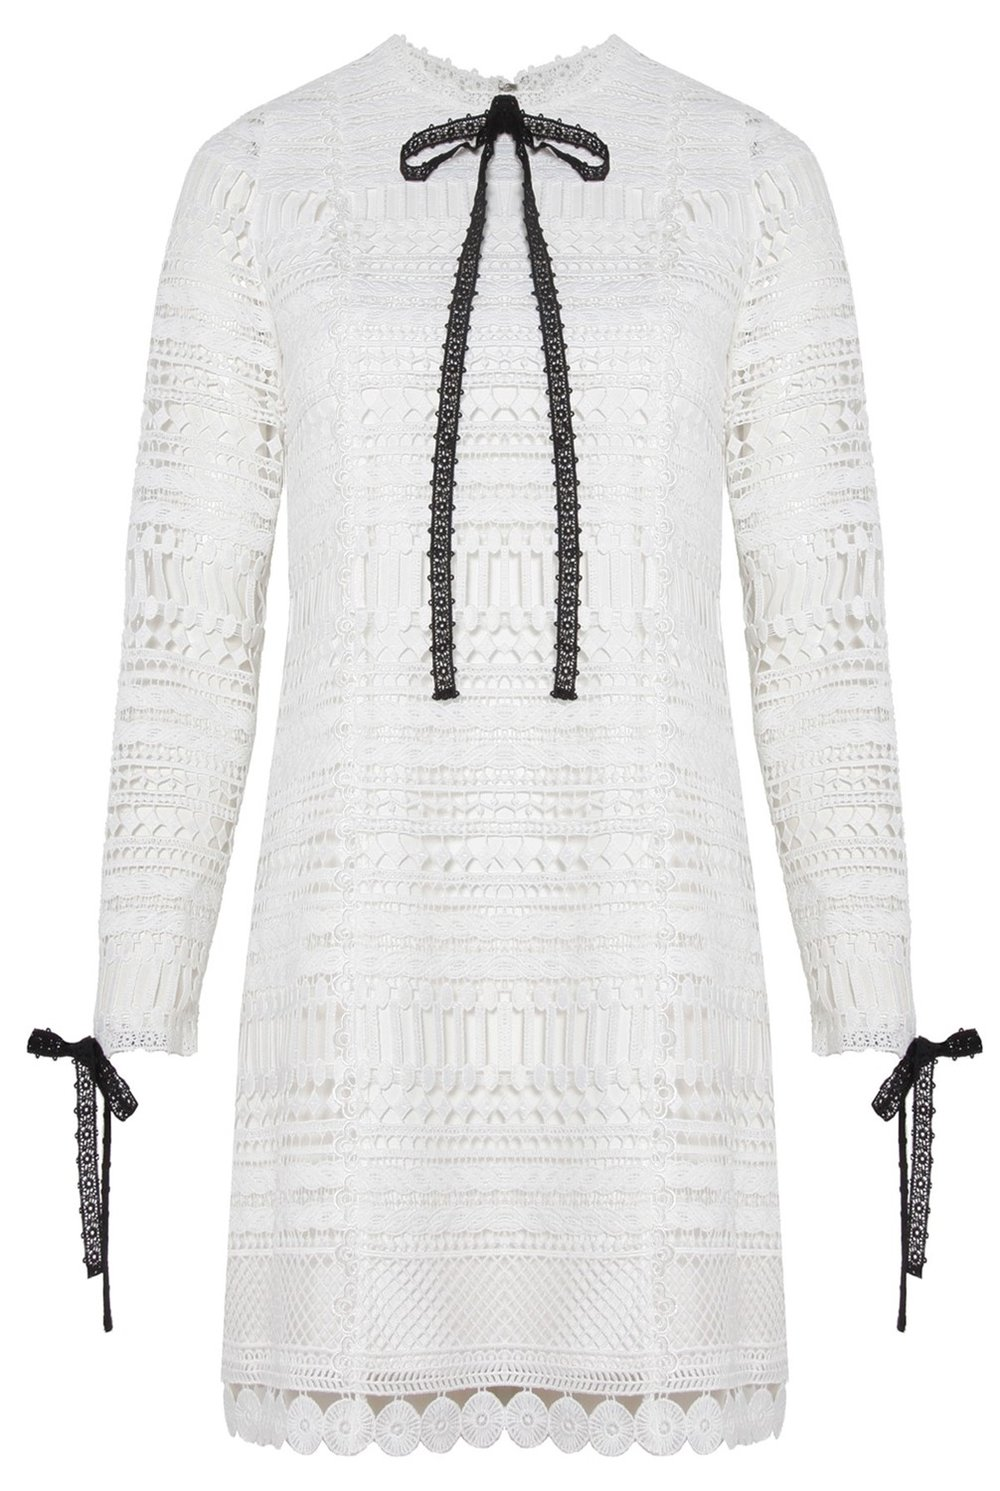 oxygen-boutique-alexis-Braelynn-Dress-White.jpg